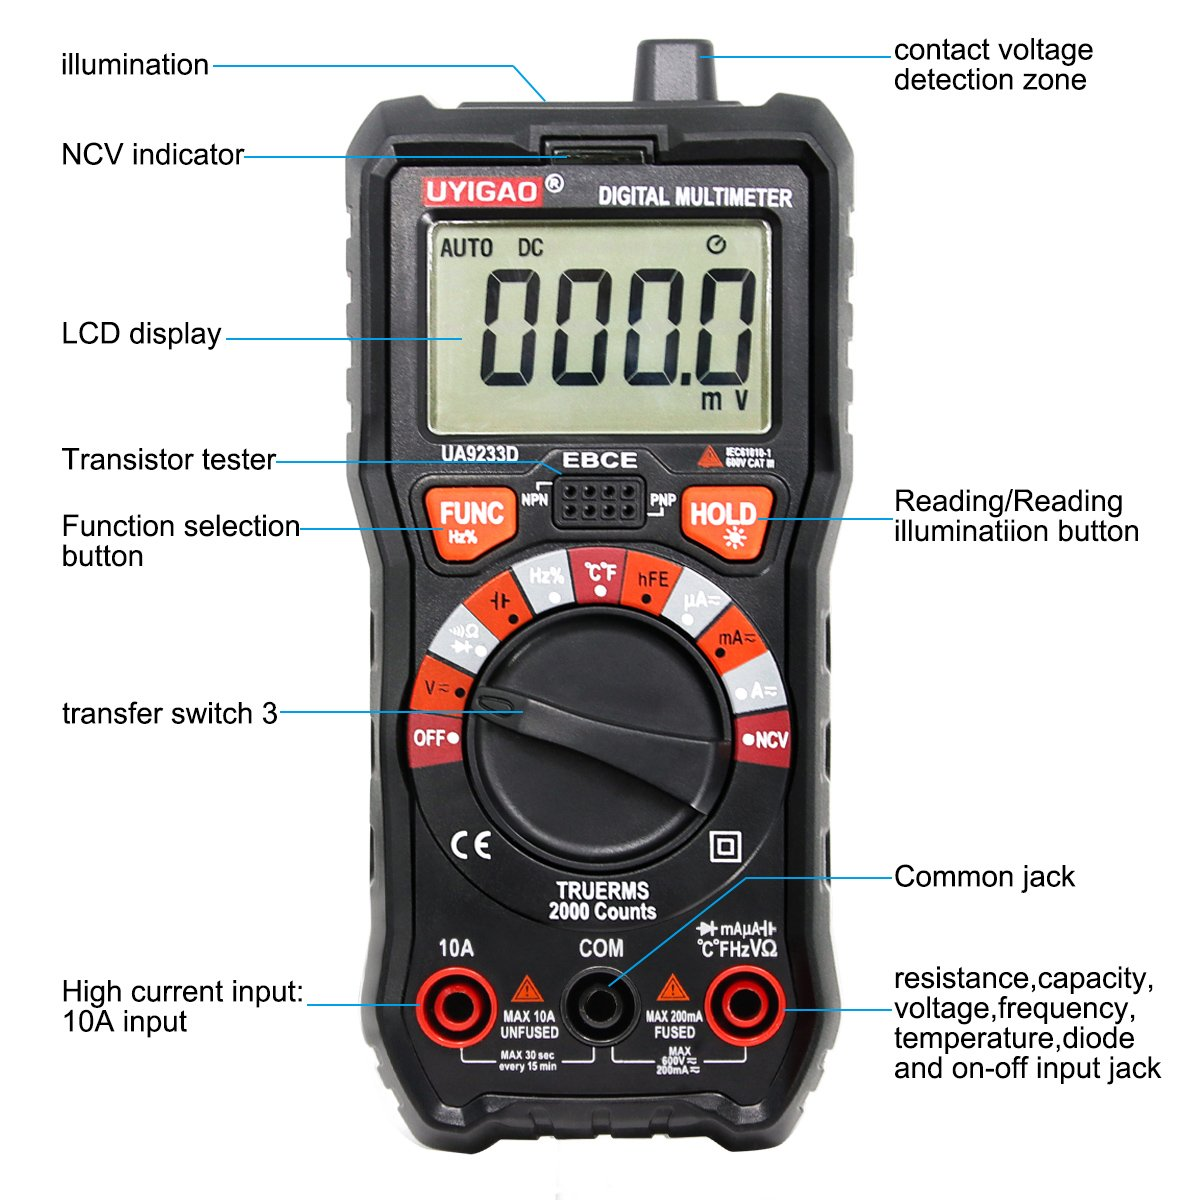 Digital Multimeter UYIGAO Auto-Ranging Digital Multimeters Electronic Measuring Instrument AC Voltage Detector Portable Amp Ohm Volt Test Meter Multi Tester Diode and Continuity Test Scanners Home Use by UYIGAO (Image #2)